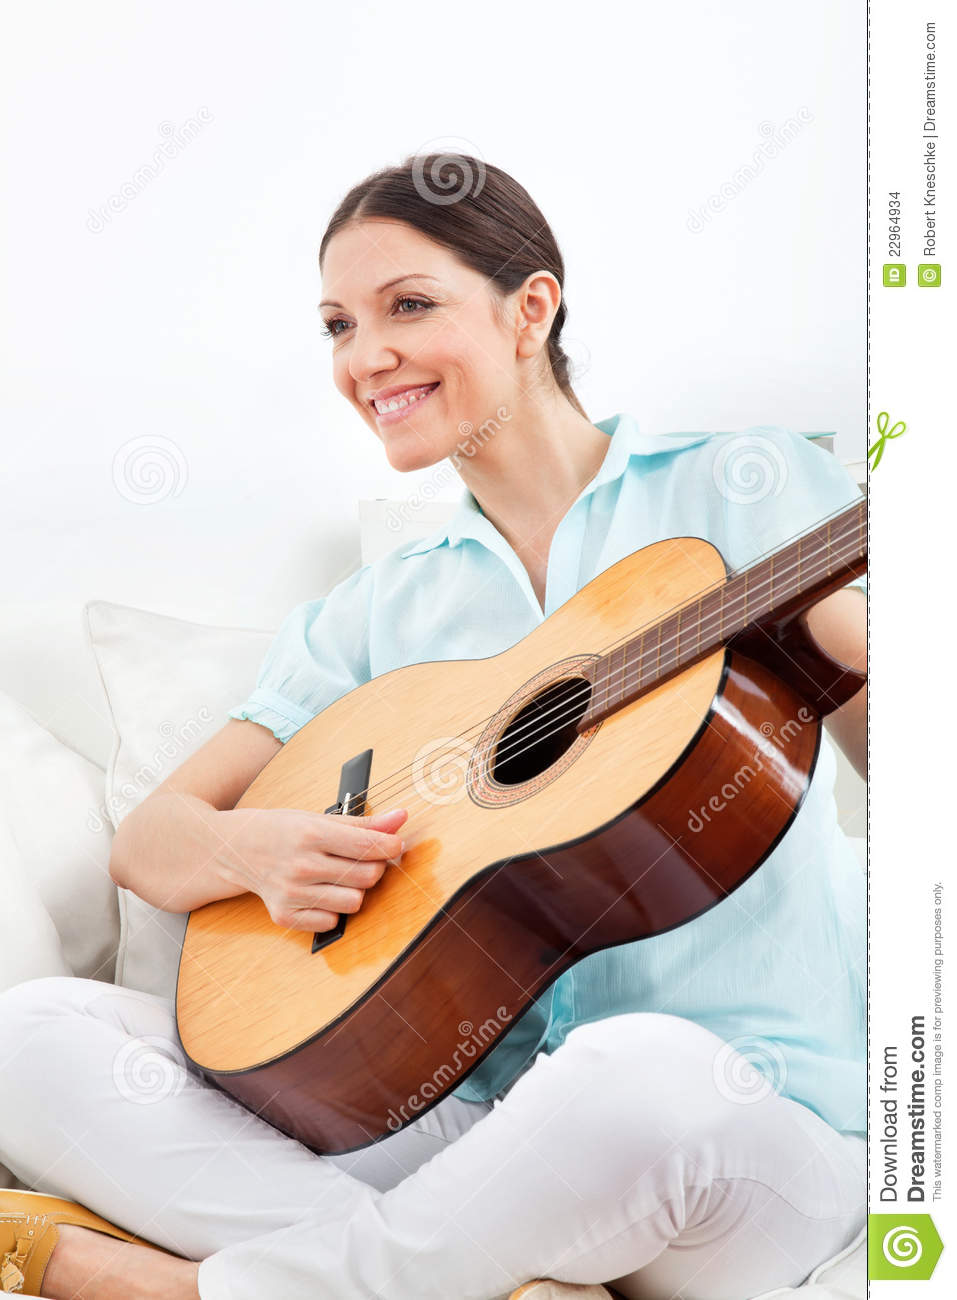 woman learning to play guitar stock photo image of happy people 22964934. Black Bedroom Furniture Sets. Home Design Ideas